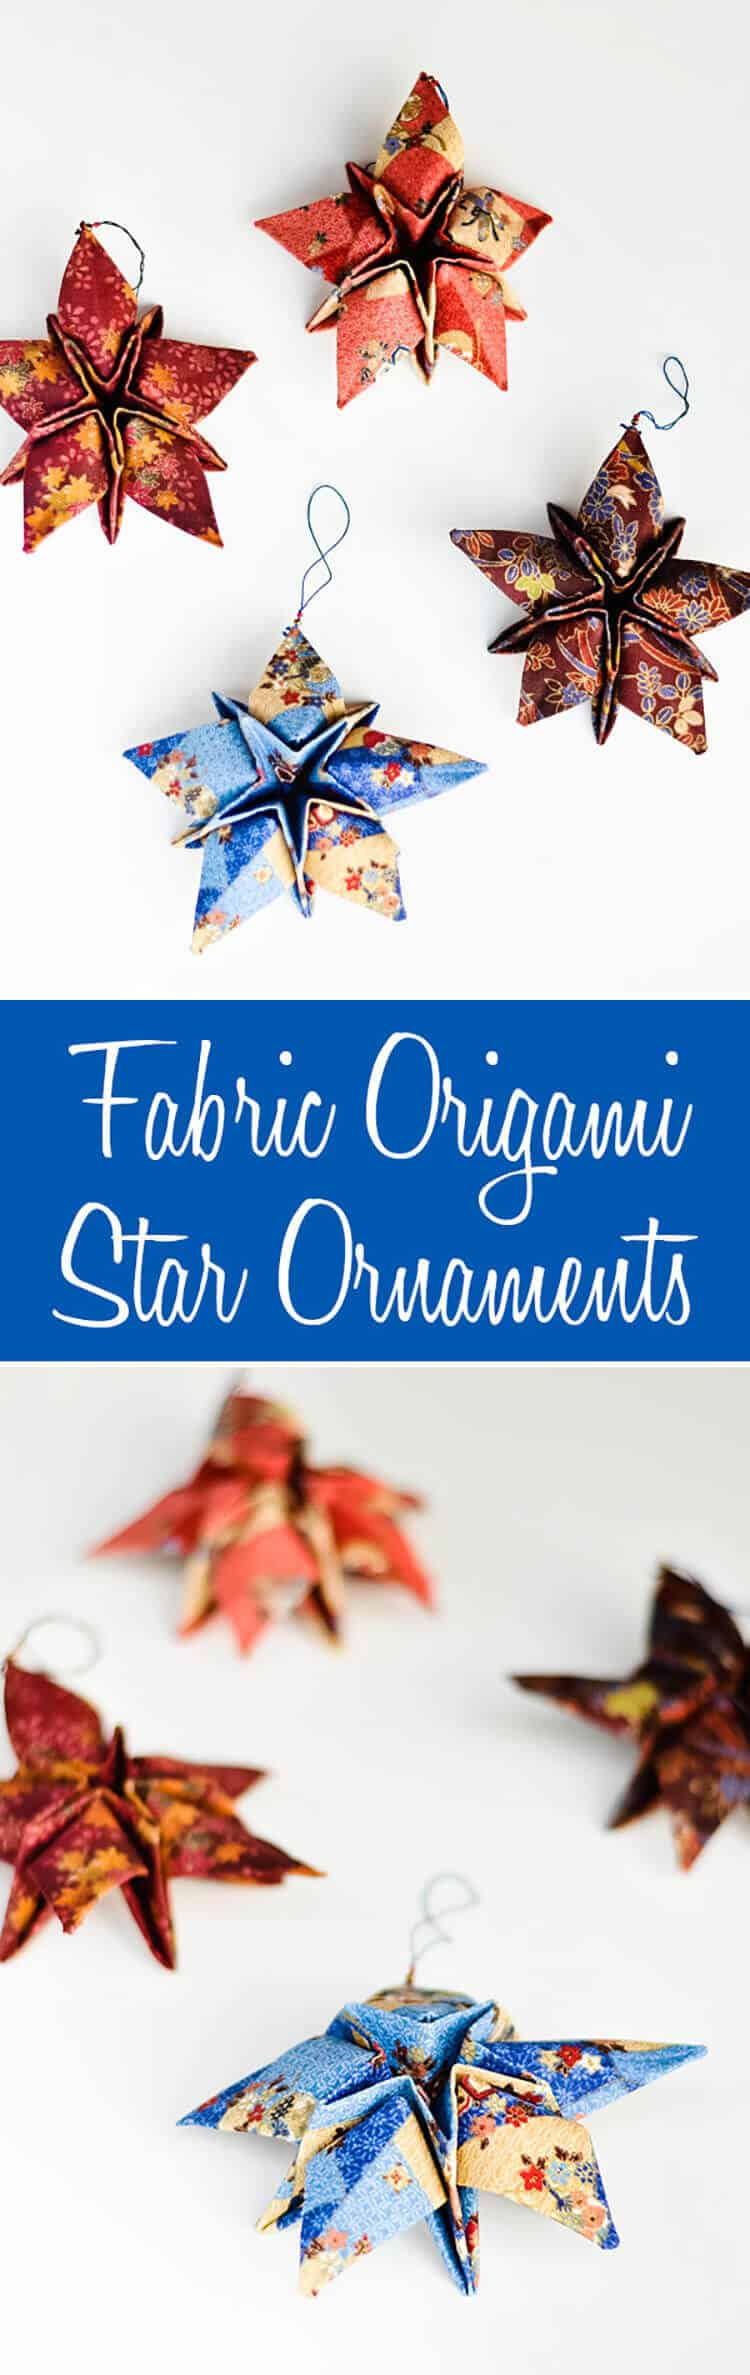 origami is fun, and using it with fabric and stiffener to create ornaments creates beautiful results like these origami stars! free tutorial